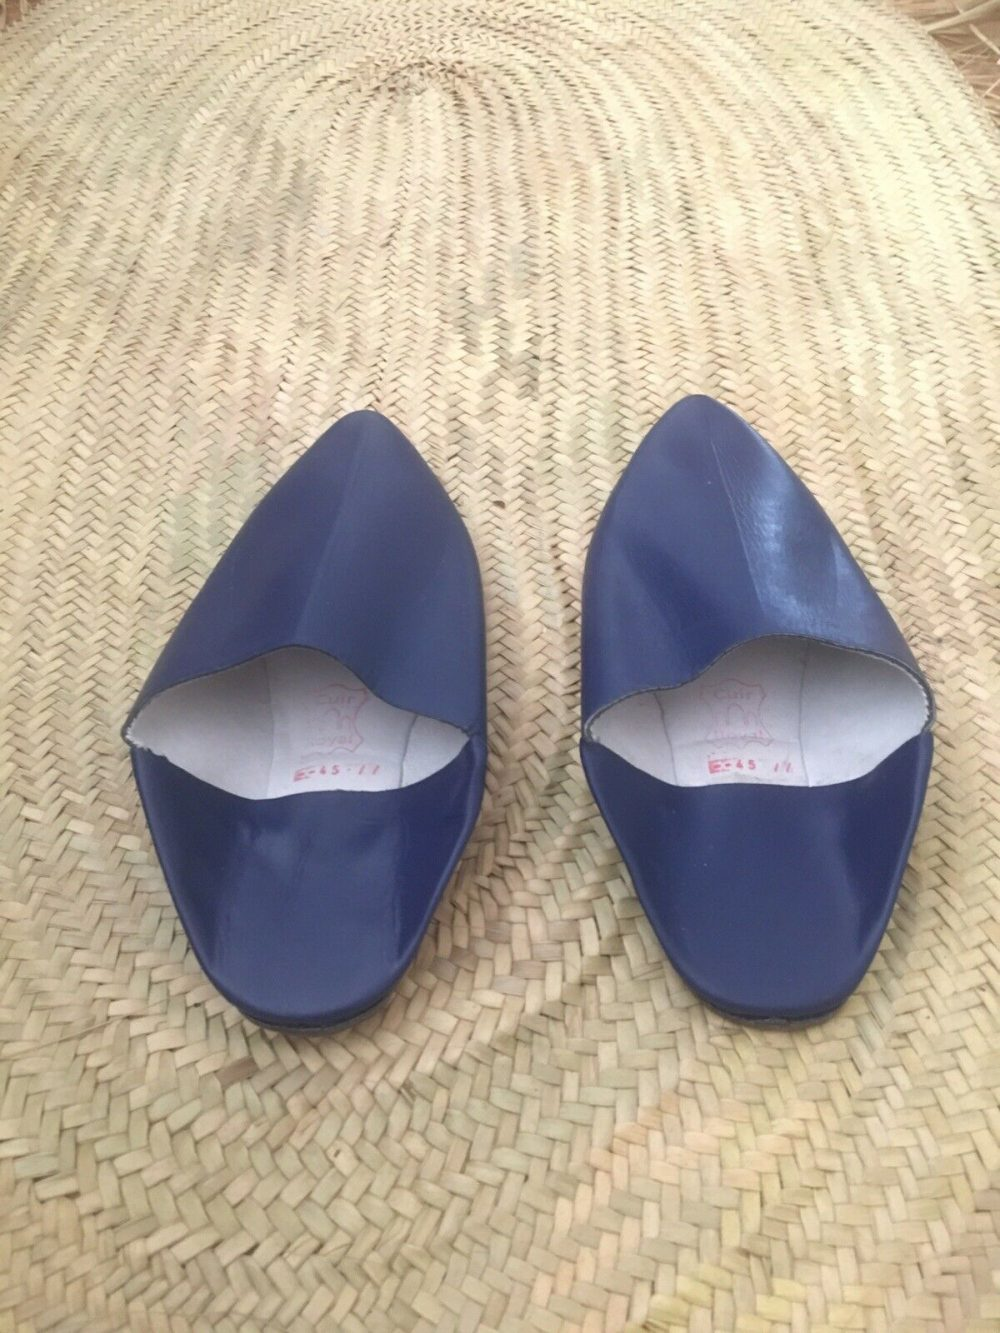 Moroccan Hand made All Leather Men's Slippers ( Baboush) Size 10 (eu 45)